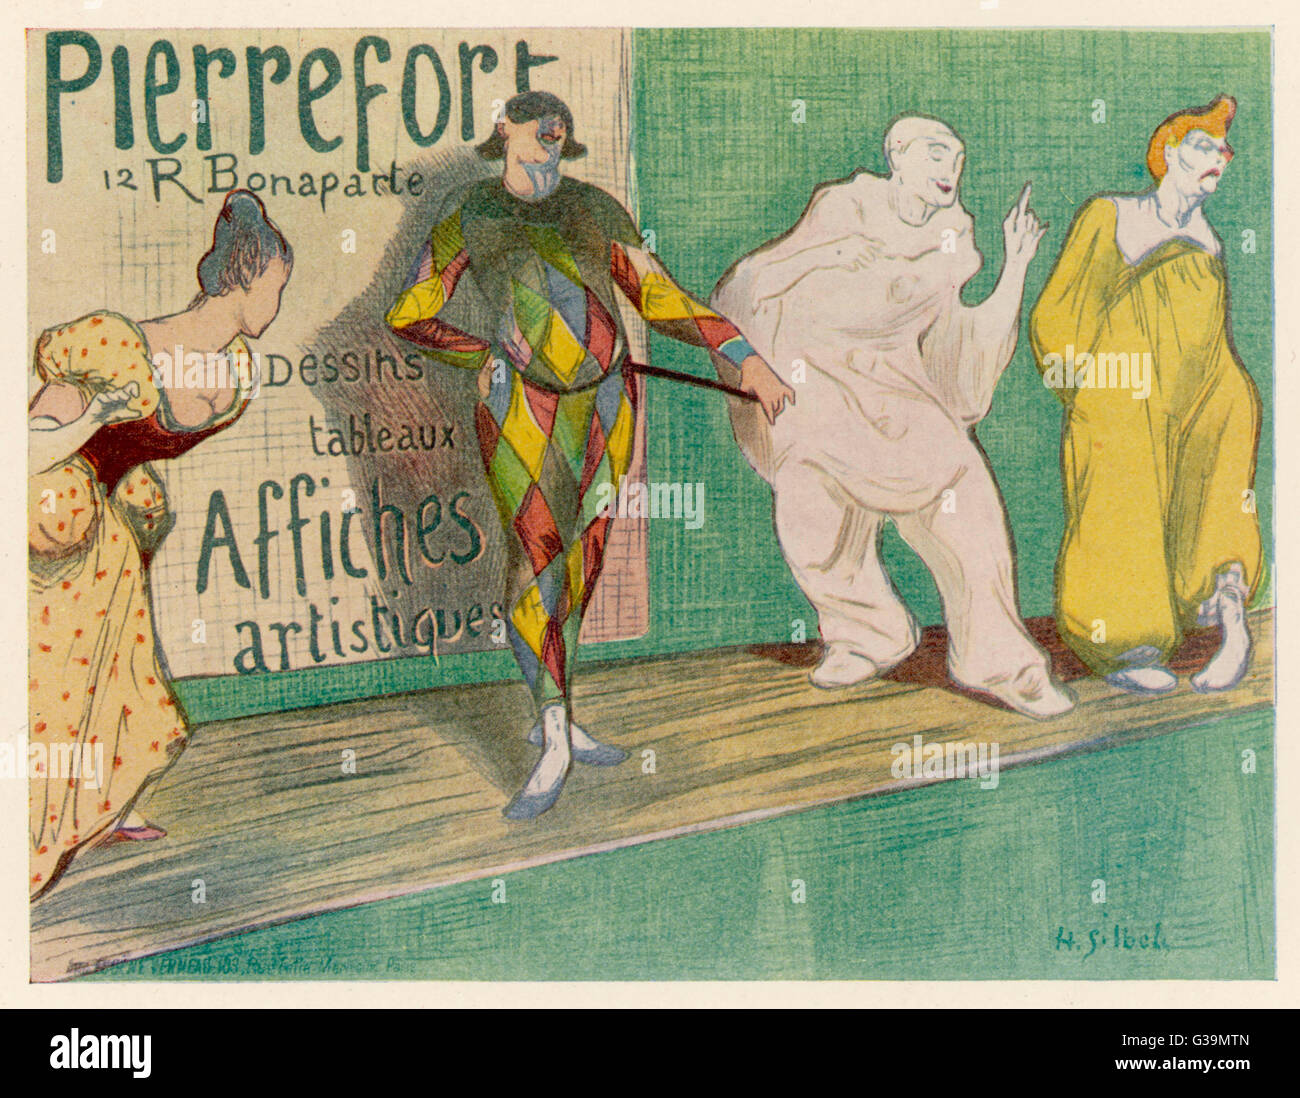 Poster depicting entertainers  - singers, commedia del arte         Date: 1897 - Stock Image